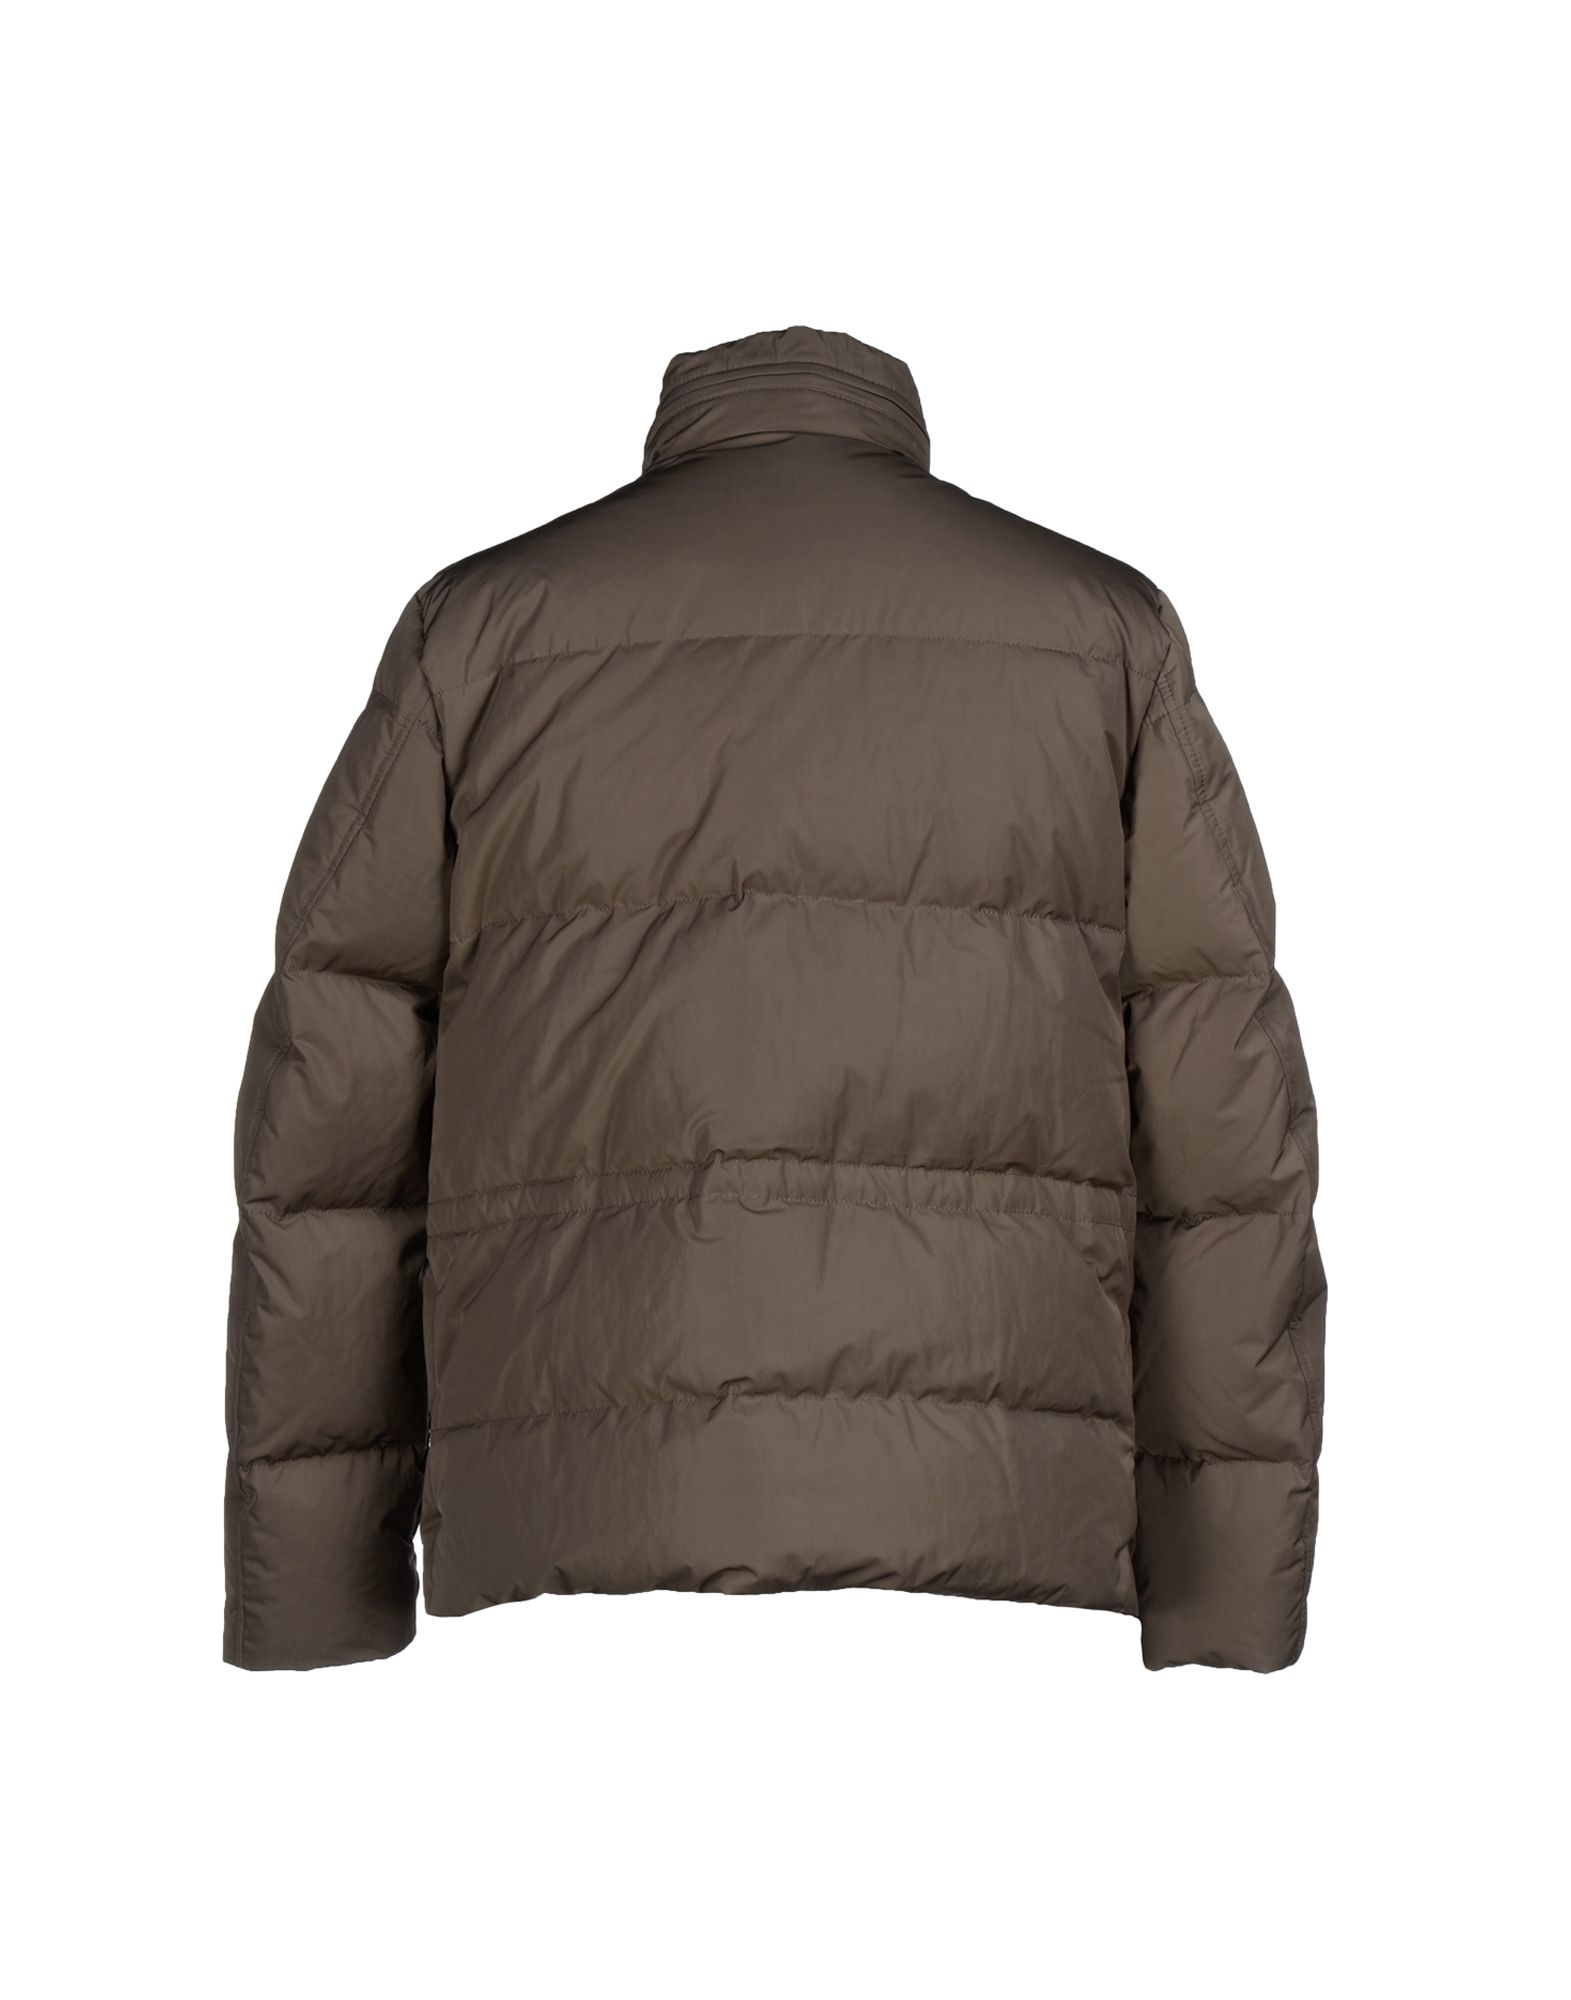 313 Tre Uno Tre Down Jacket In Green For Men Lyst